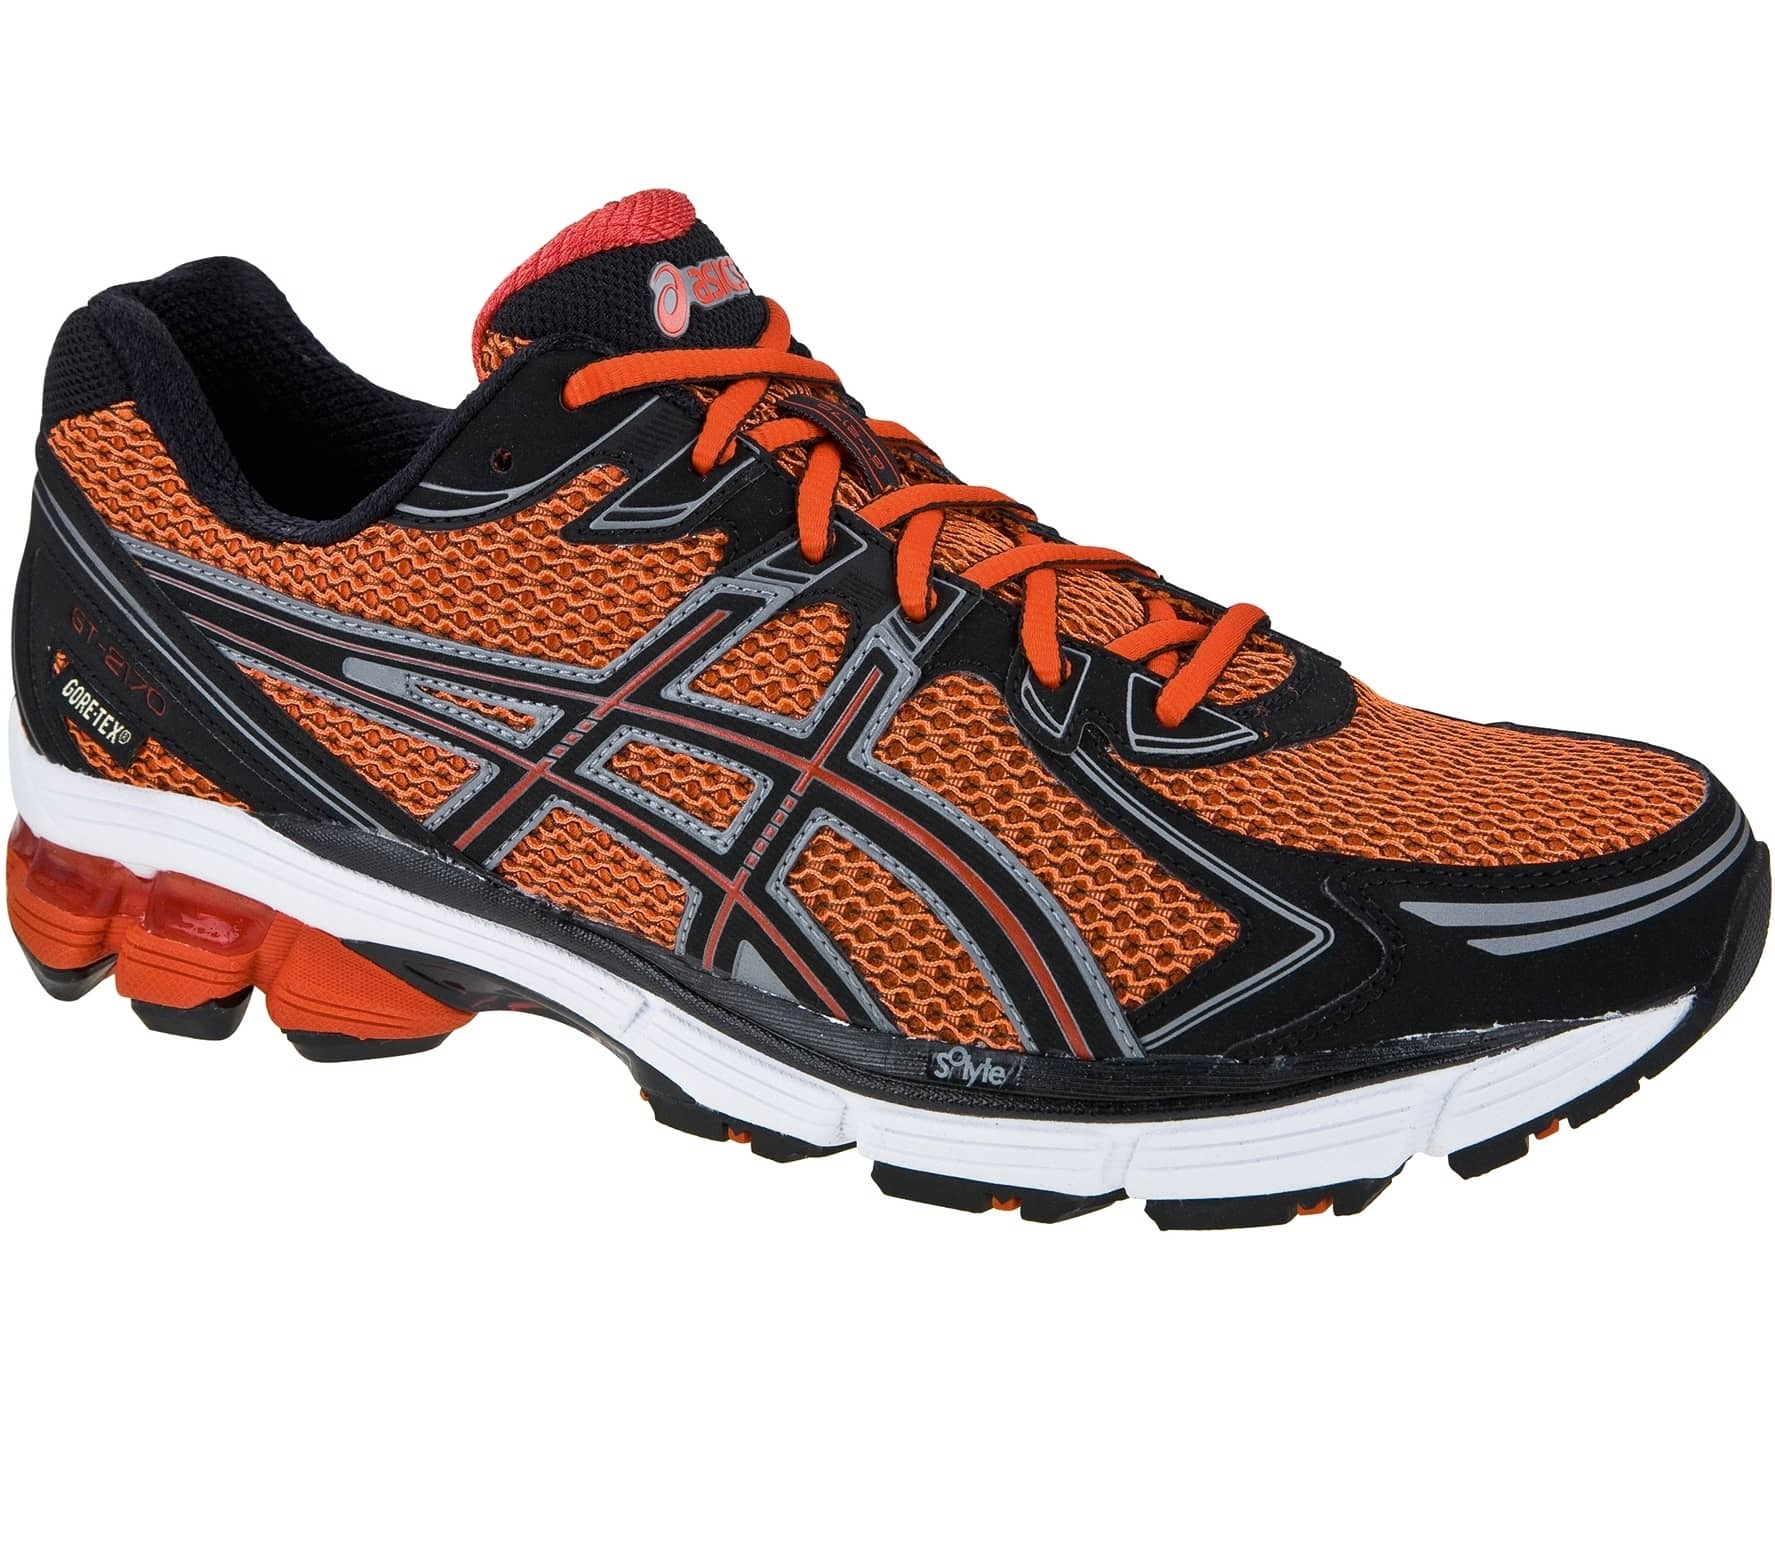 hot sale online 802f4 fb63d Asics - running shoes GT-2170 G-TX Trail - HW12